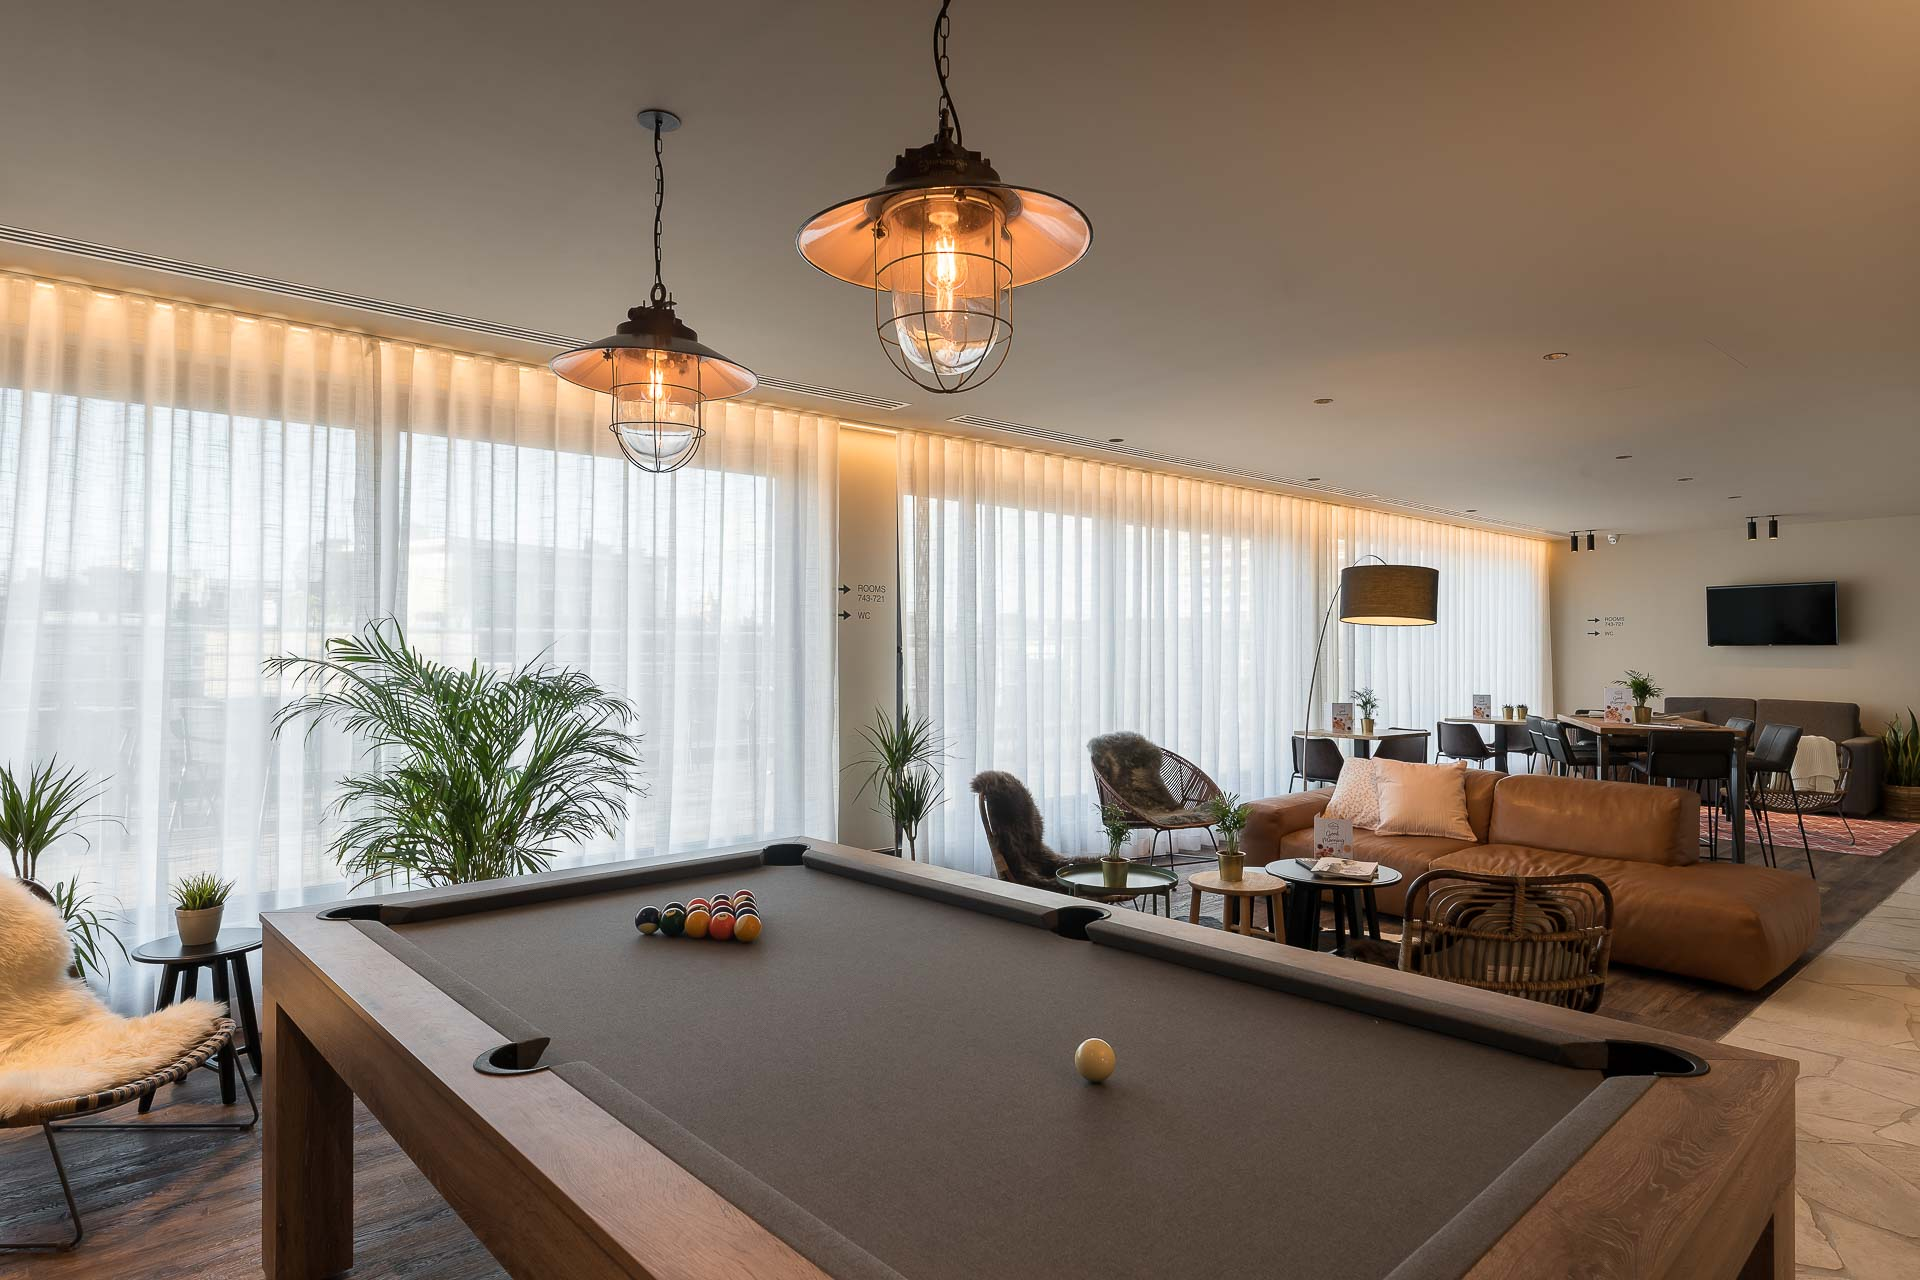 Pool table at Food Cafe PREMIER SUITES PLUS Antwerp